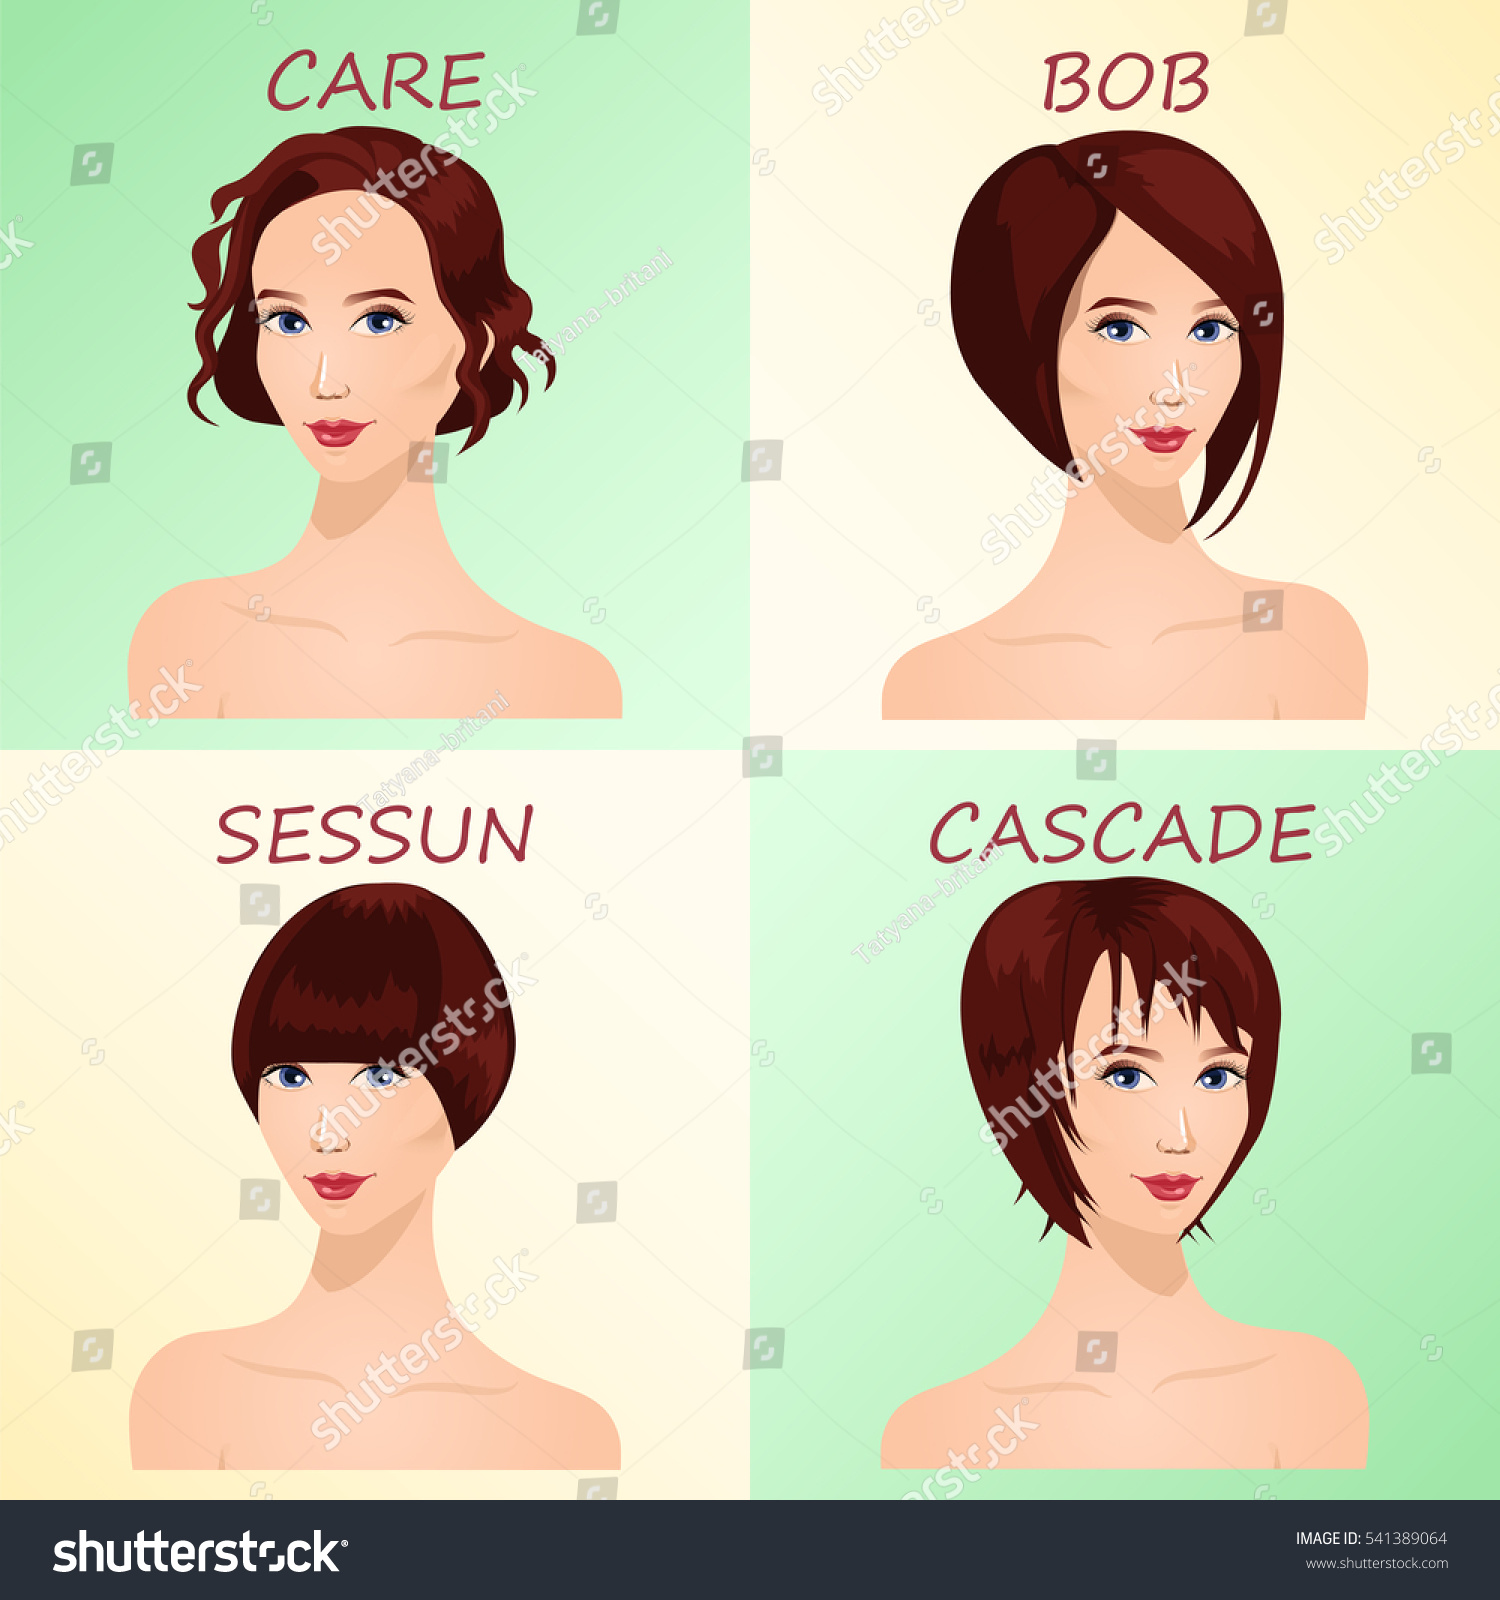 Four Basic Types Short Haircuts Women Stock Vector (Royalty Free) 541389064